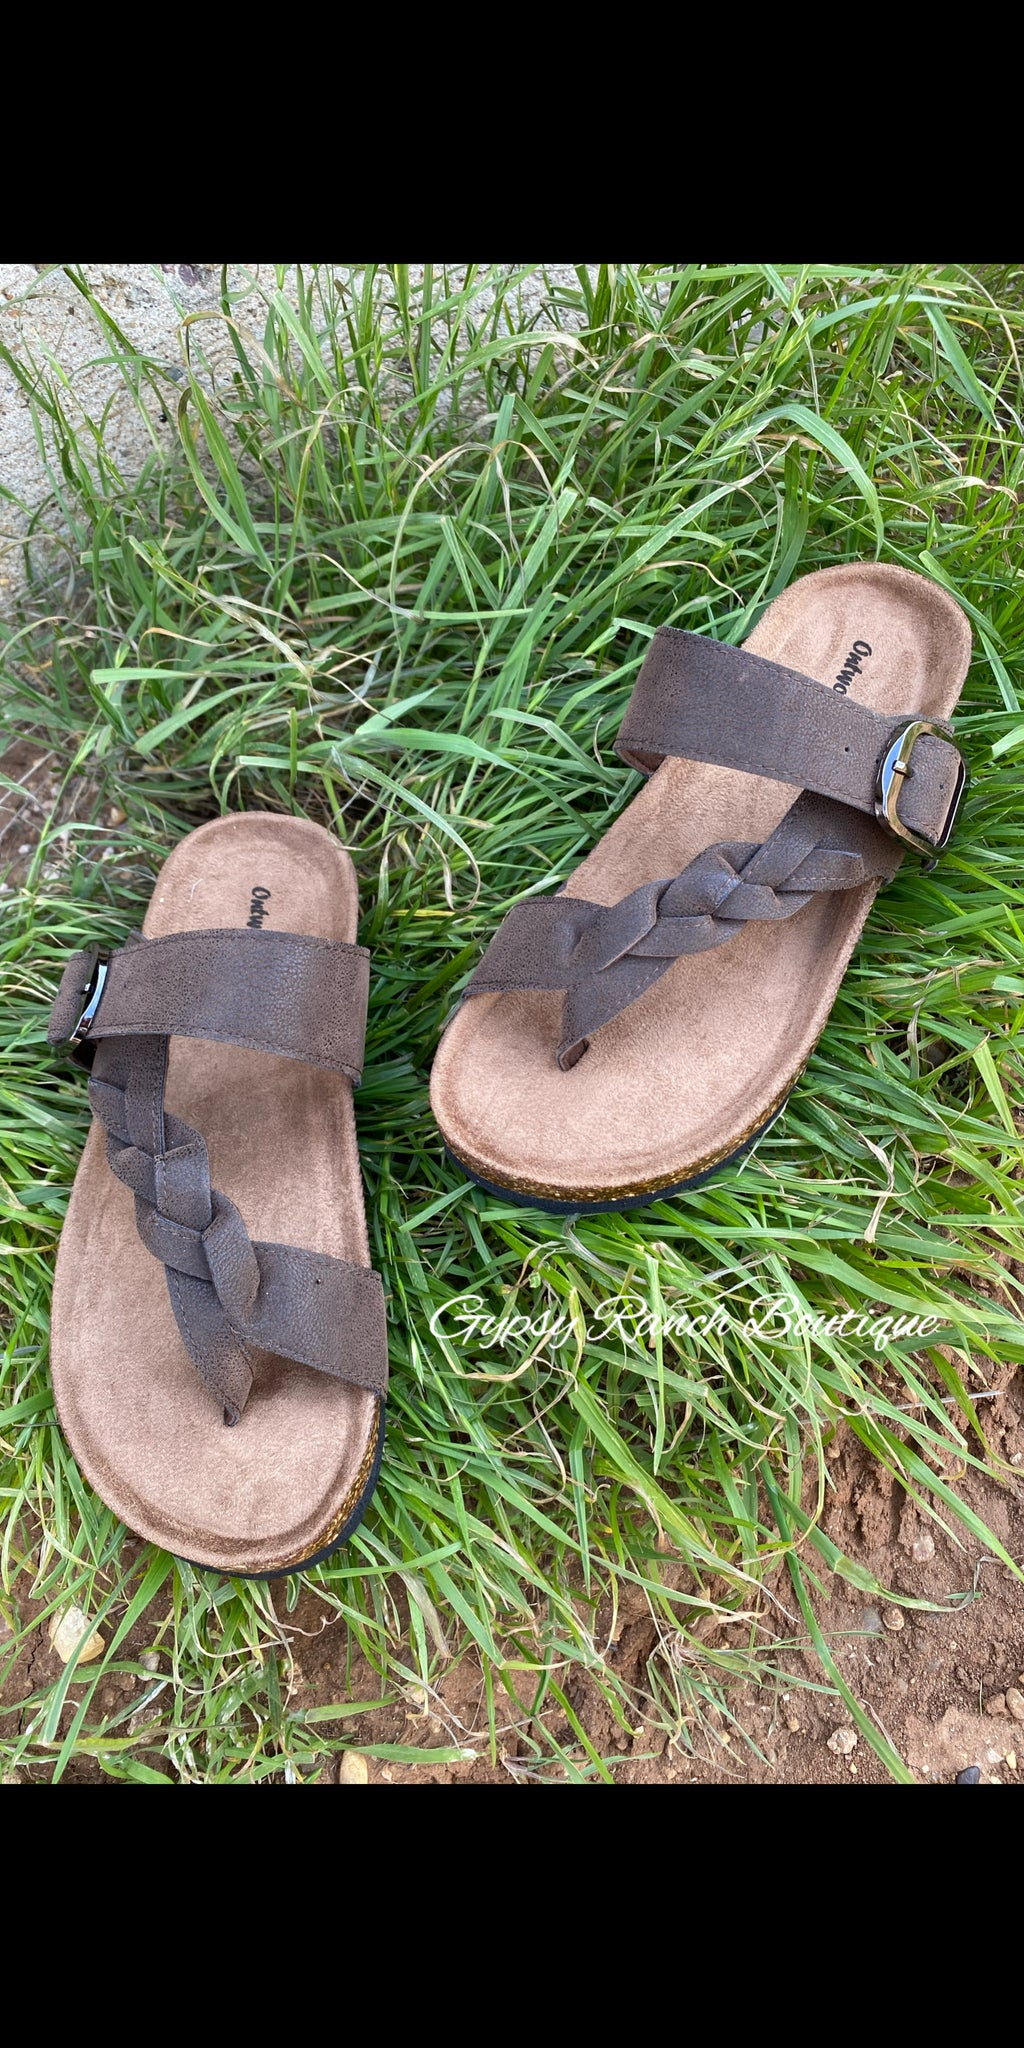 Kids - The Miami Braided Sandals